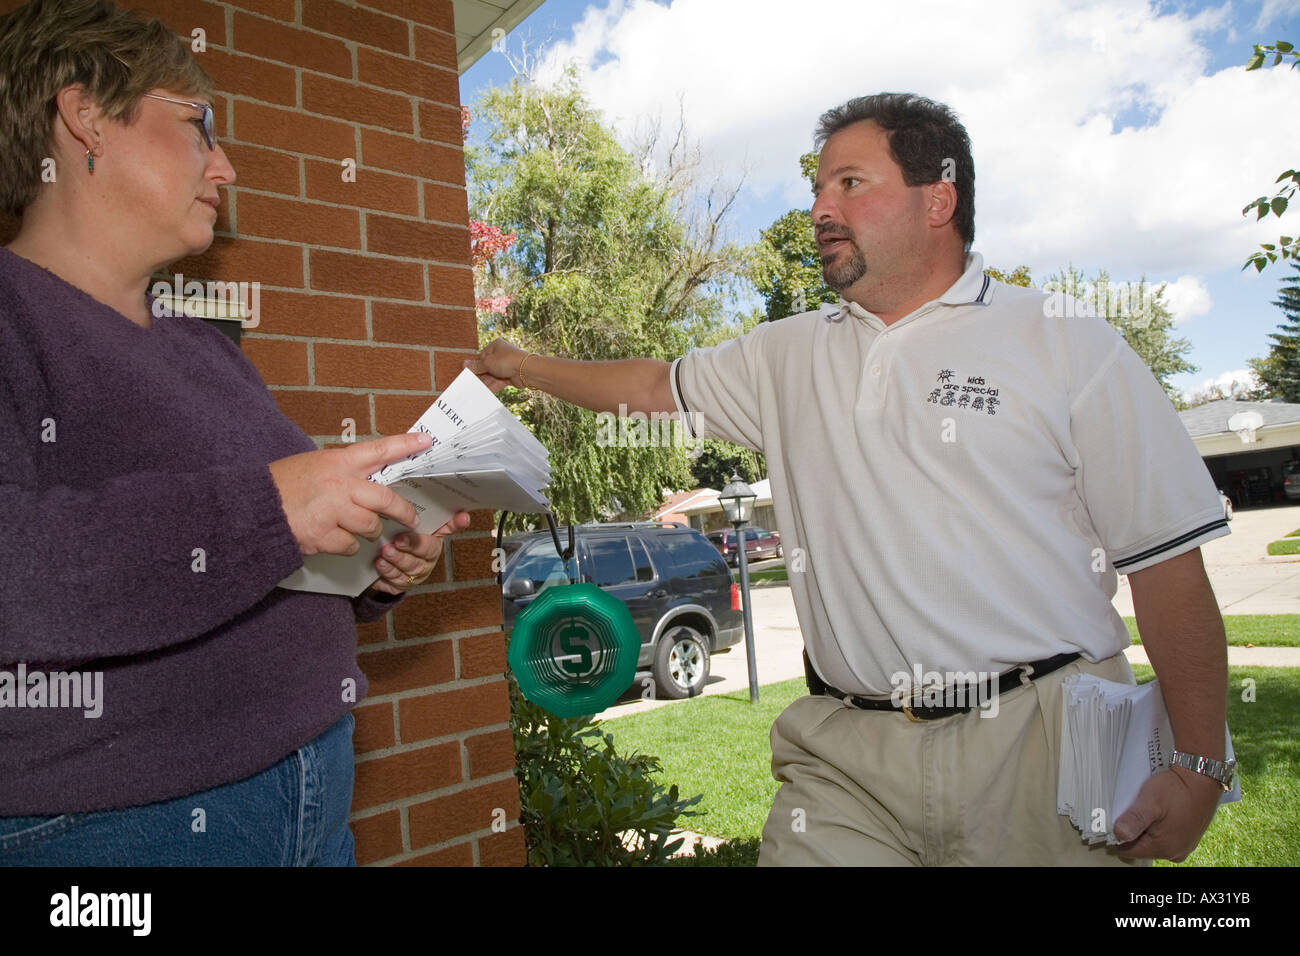 Union Member Campaings Door-to-Door Against Right to Work Law - Stock Image